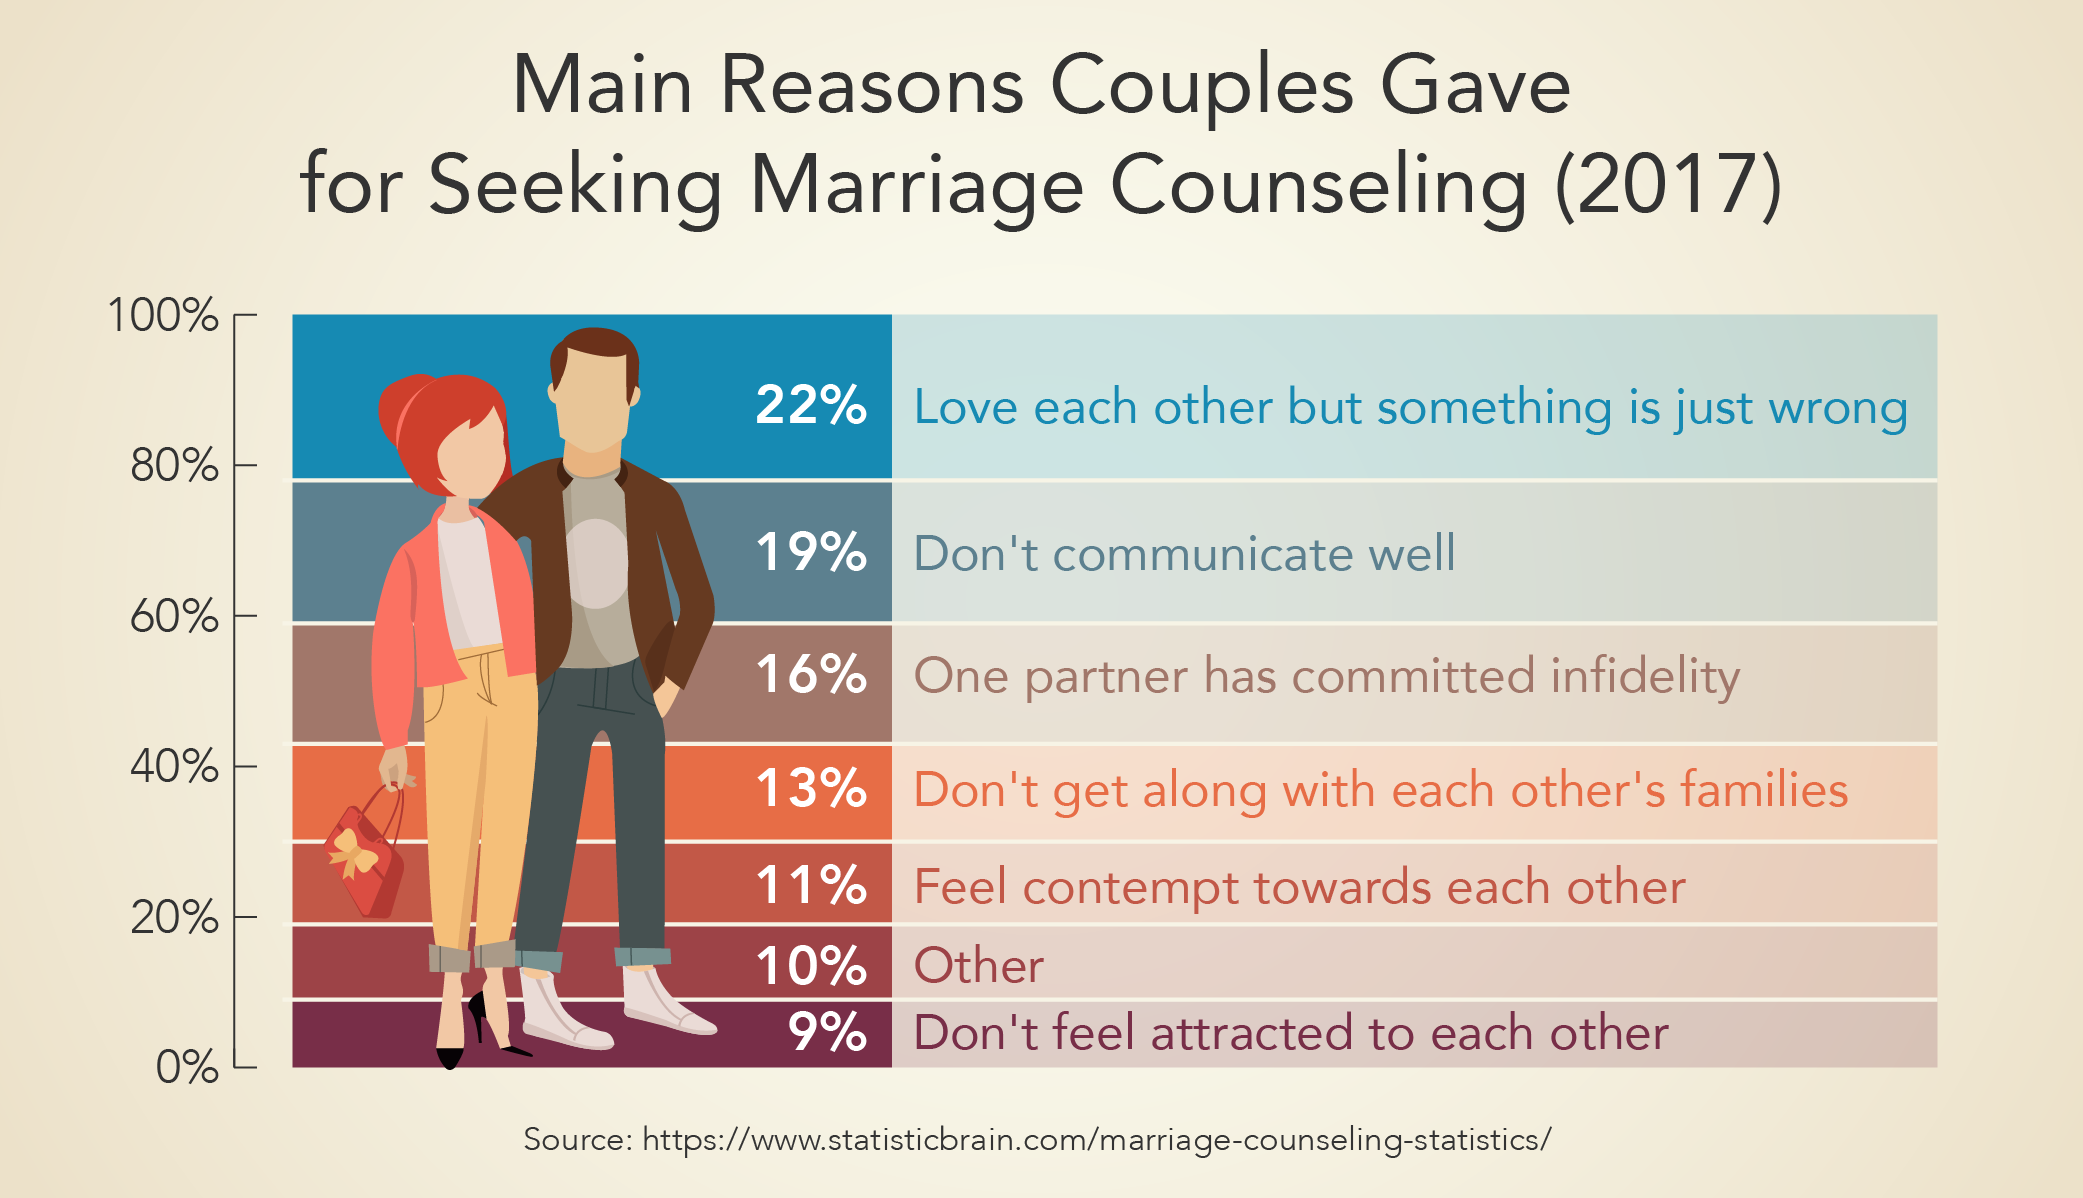 Main Reasons Couples Gave for Seeking Marriage Counseling (2017)